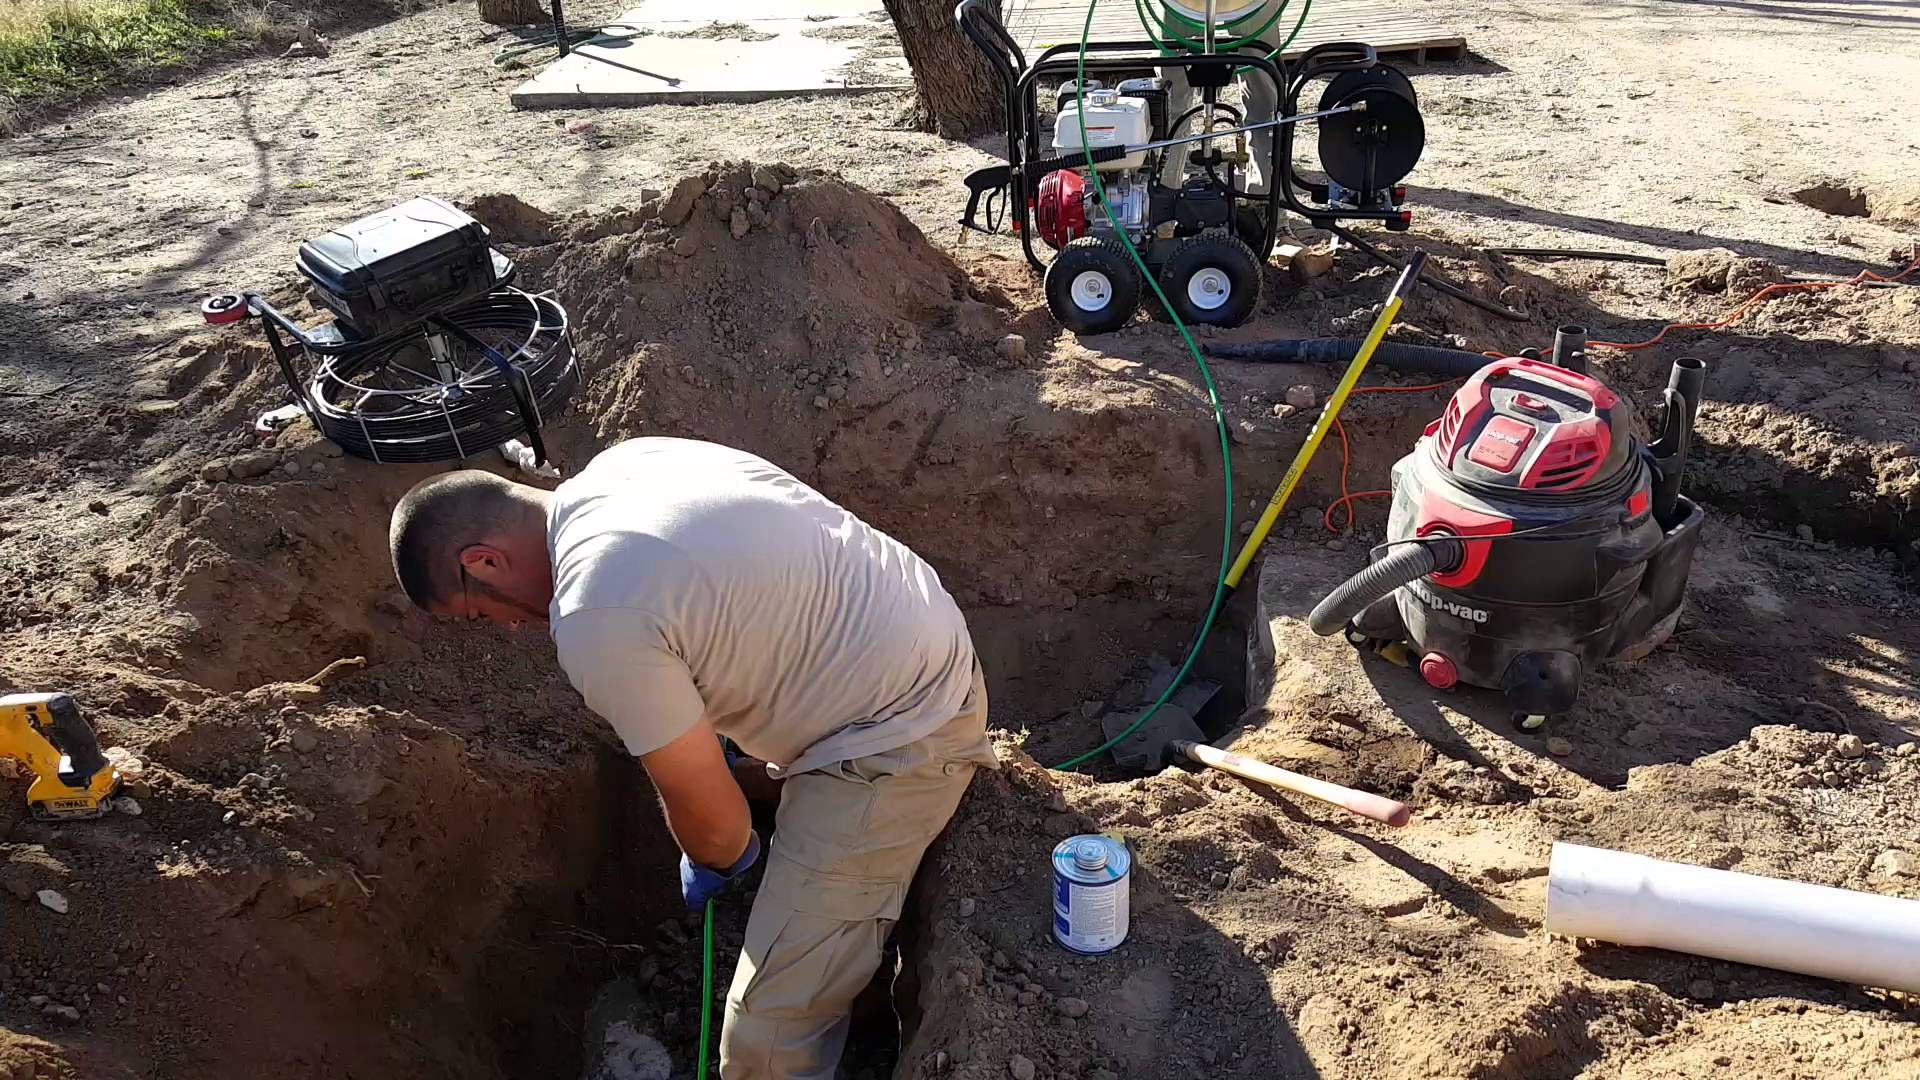 Plano-Garland TX Septic Tank Pumping, Installation, & Repairs-We offer Septic Service & Repairs, Septic Tank Installations, Septic Tank Cleaning, Commercial, Septic System, Drain Cleaning, Line Snaking, Portable Toilet, Grease Trap Pumping & Cleaning, Septic Tank Pumping, Sewage Pump, Sewer Line Repair, Septic Tank Replacement, Septic Maintenance, Sewer Line Replacement, Porta Potty Rentals, and more.